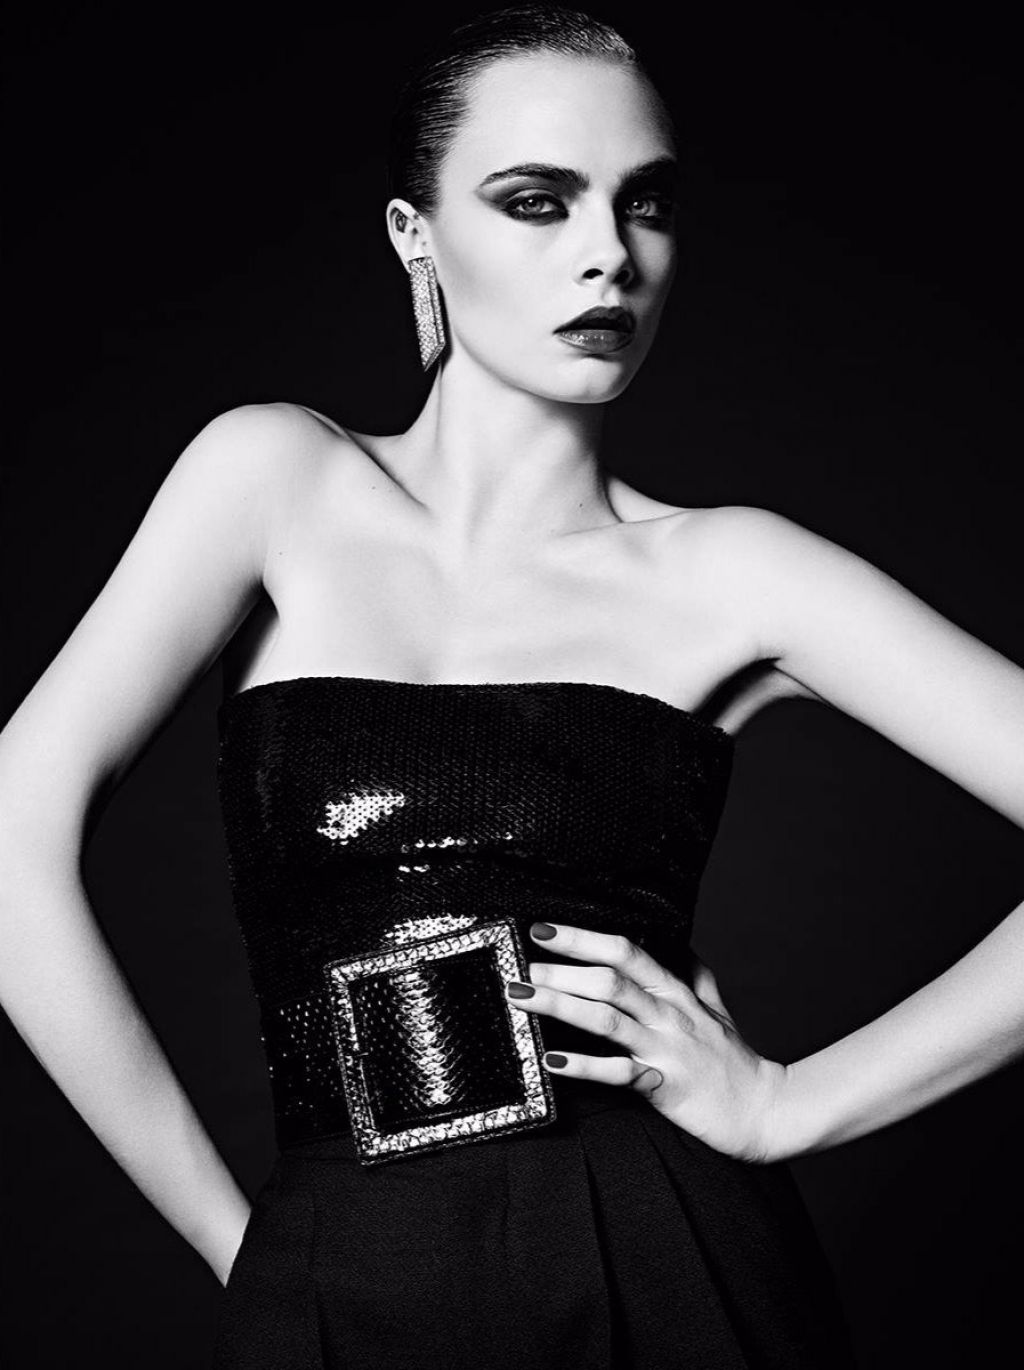 cara-delevingne-photoshoot-for-saint-laurent-le-smoking-2016-1